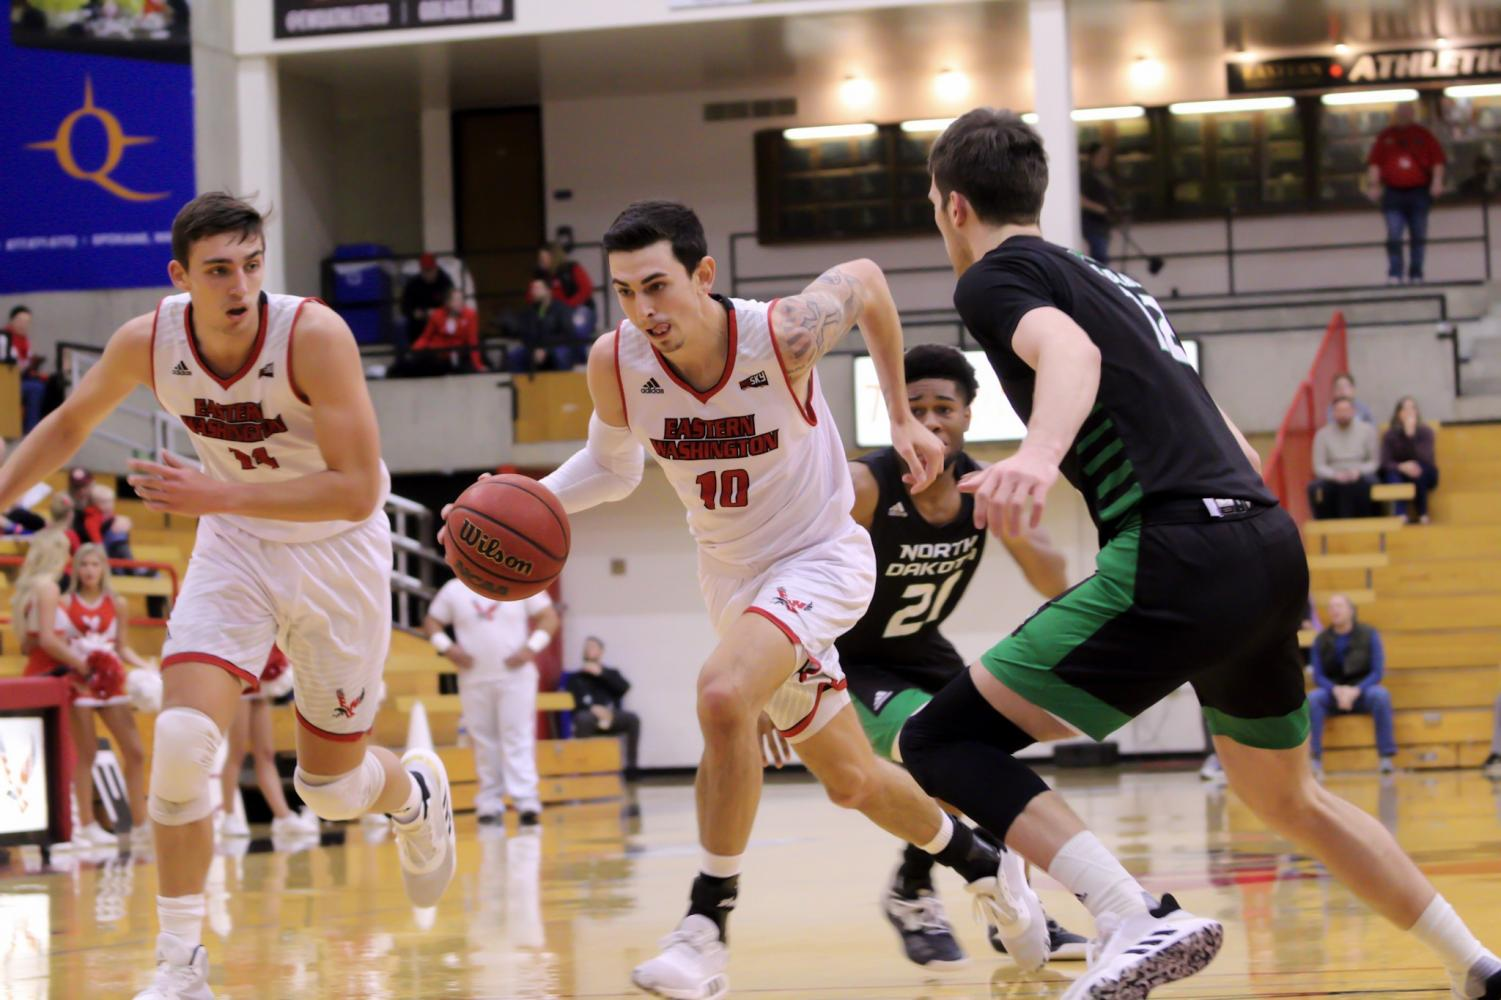 EWU junior guard Jacob Davison drives to the hoop for a layup. Davison scored 39 points Sunday, two away from tying his career-high.